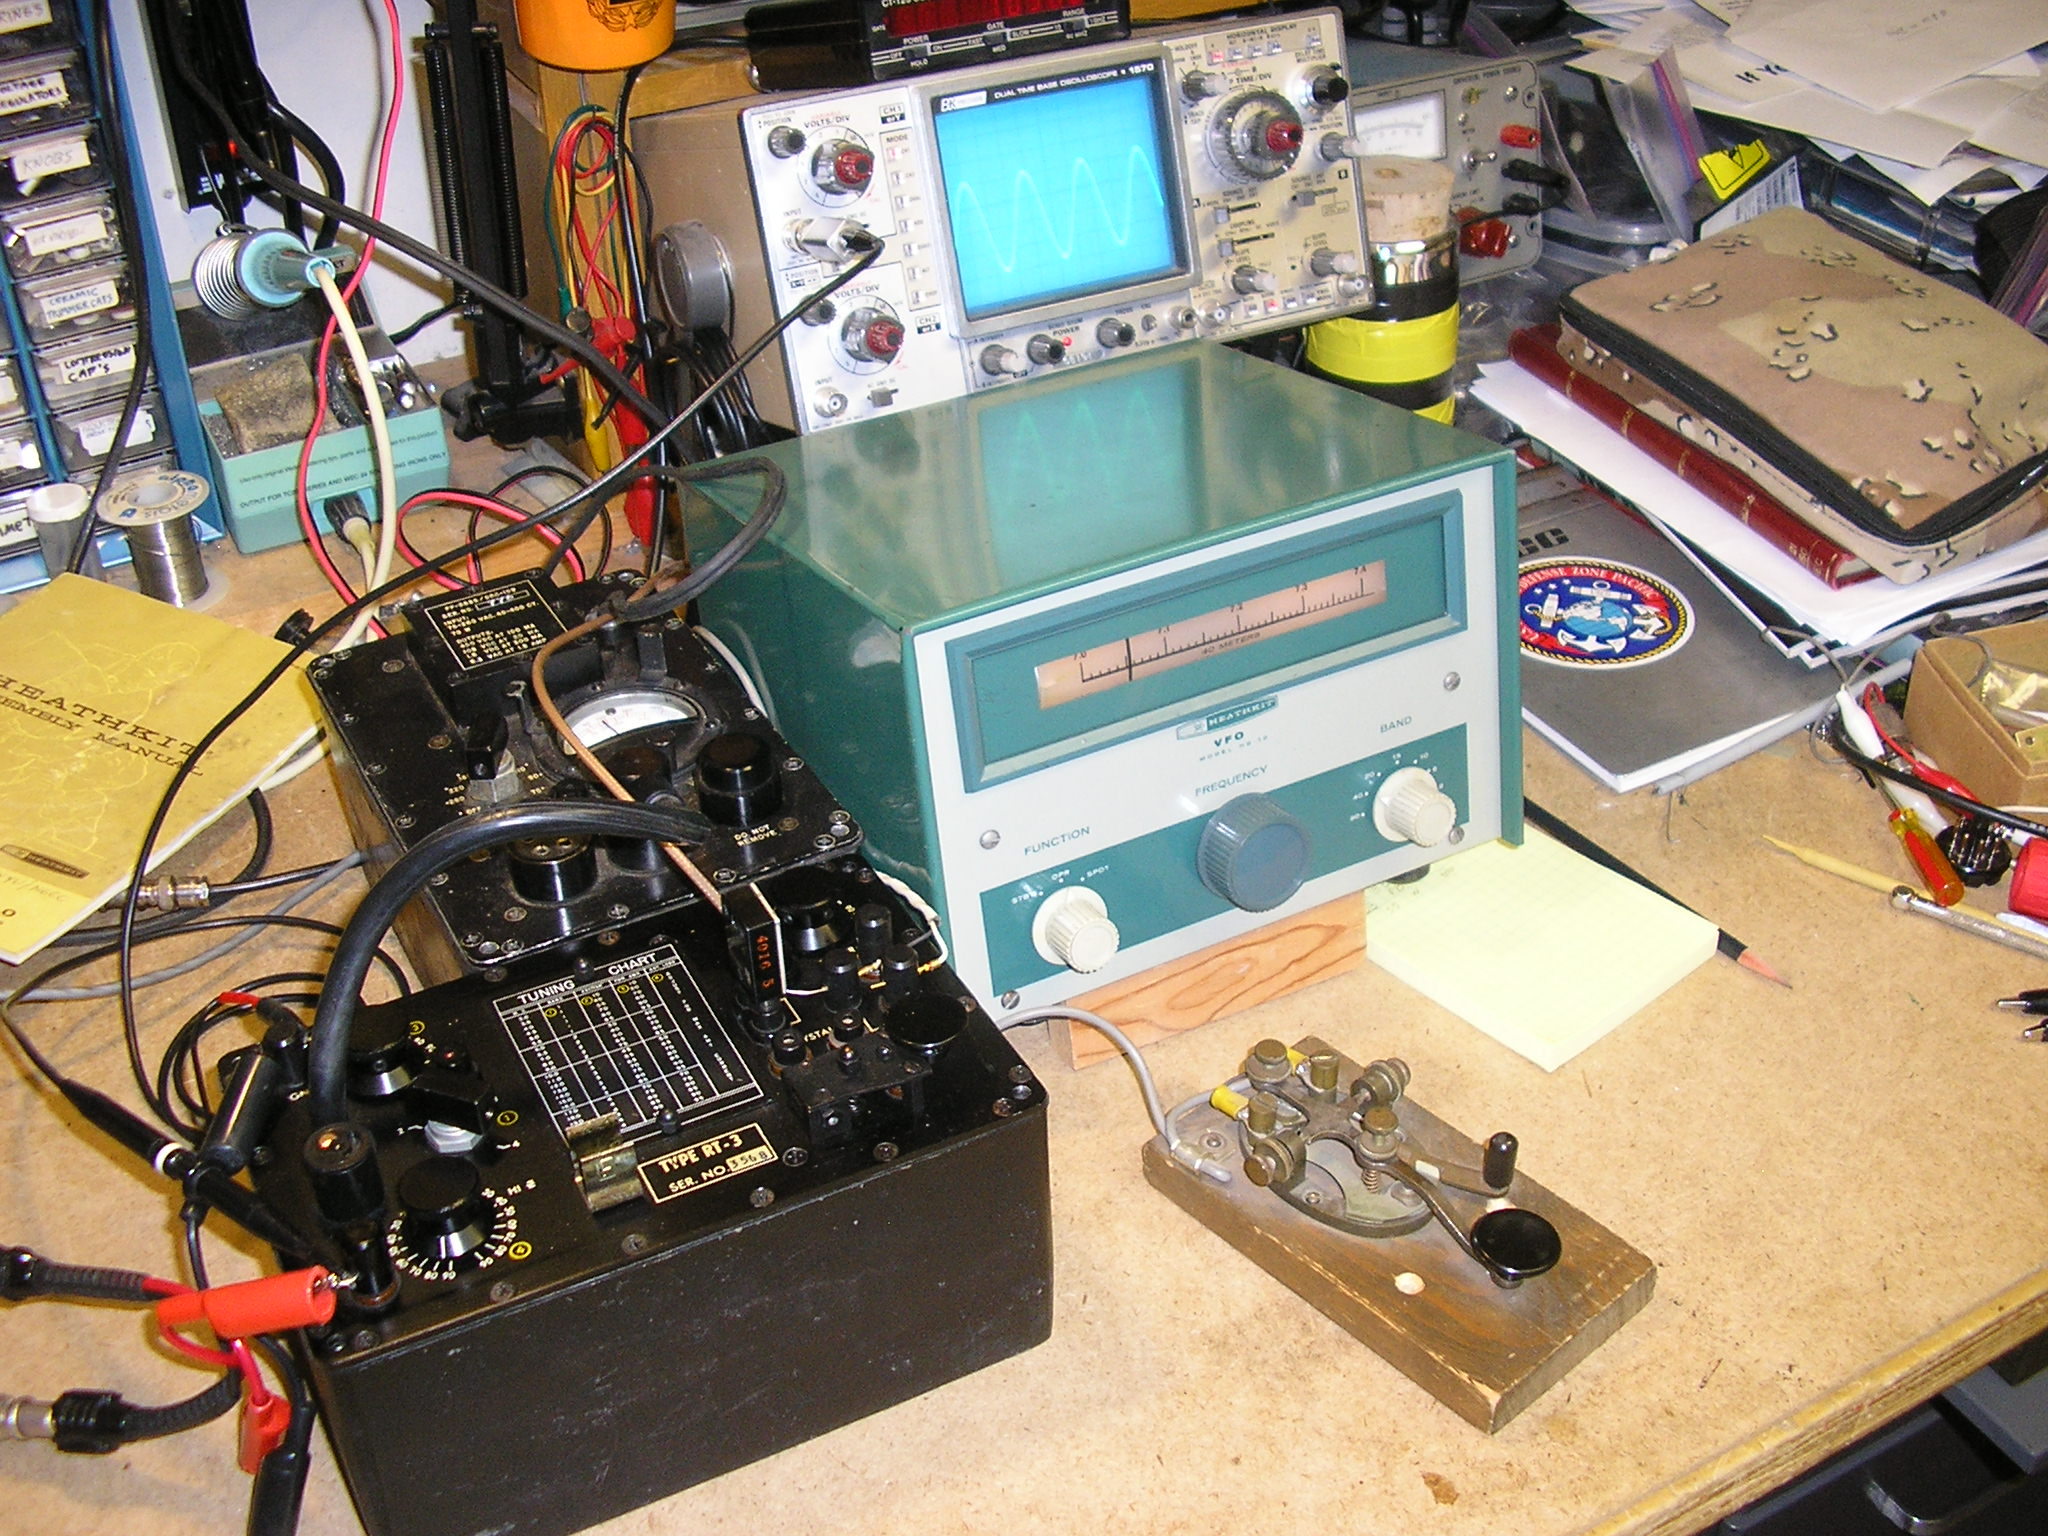 HG-10 VFO driving the RT-3 Transmitter